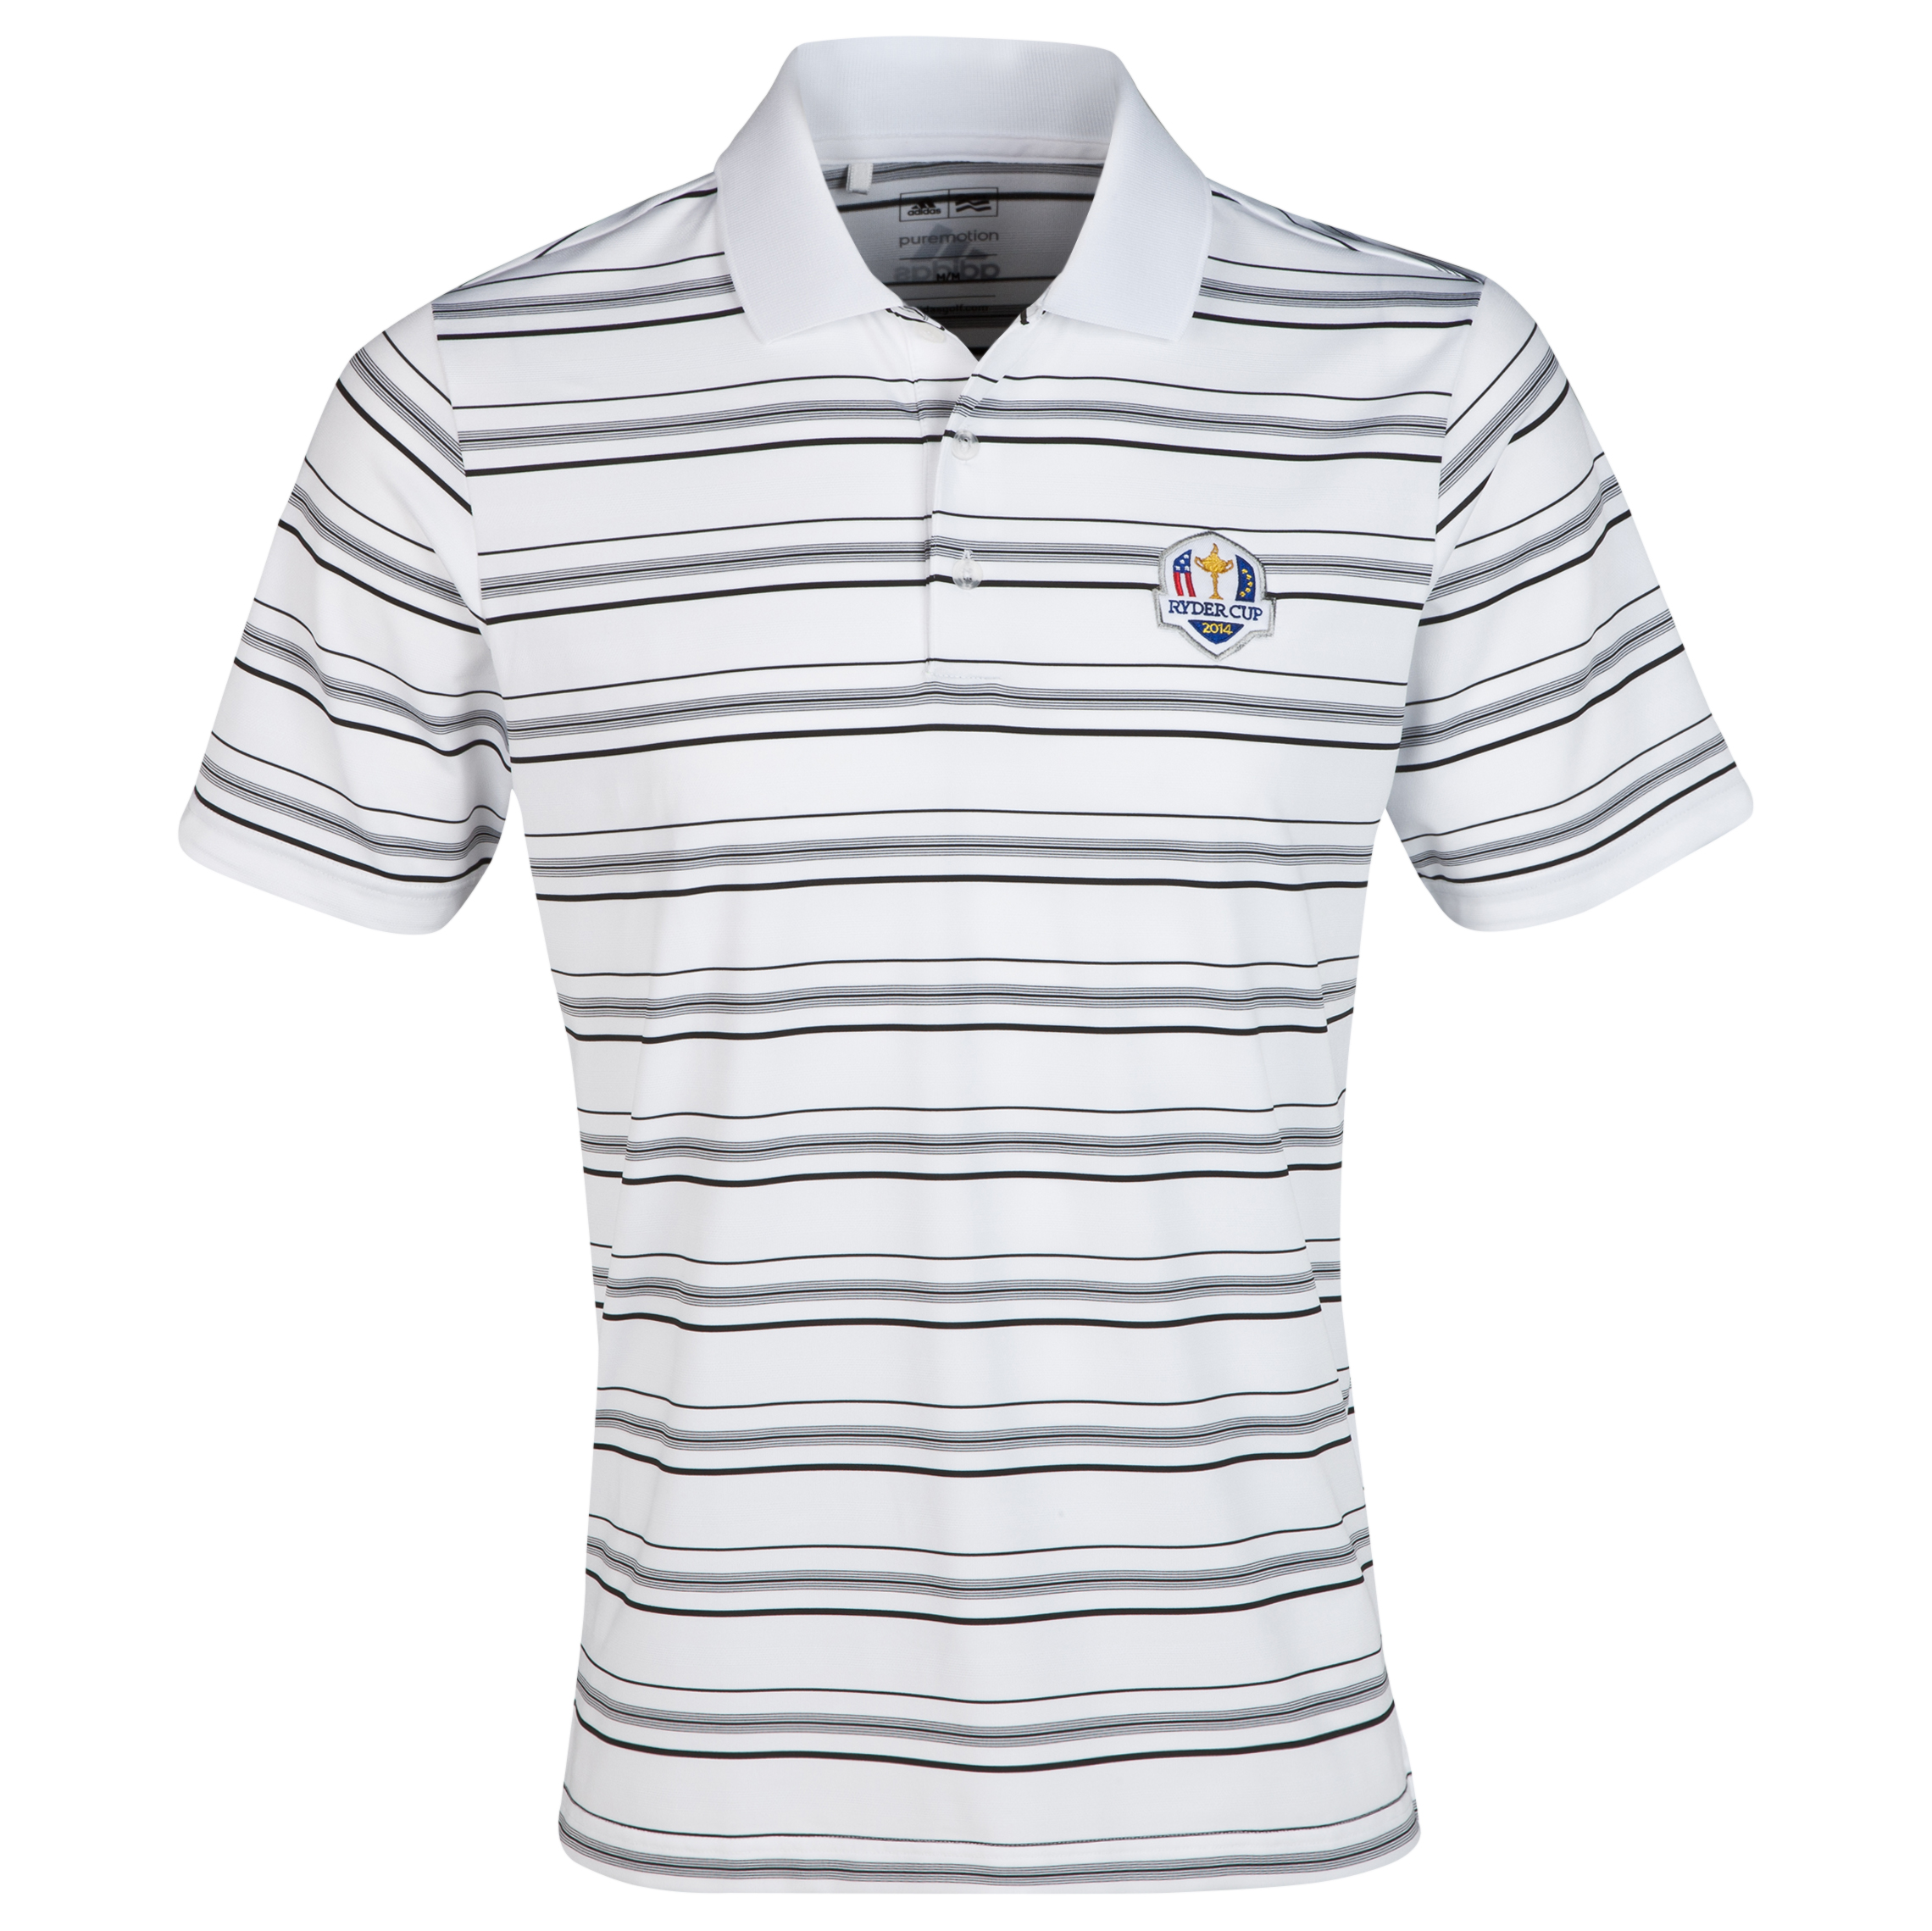 The 2014 Ryder Cup adidas ClimaLite 2-Colour Stripe Polo White